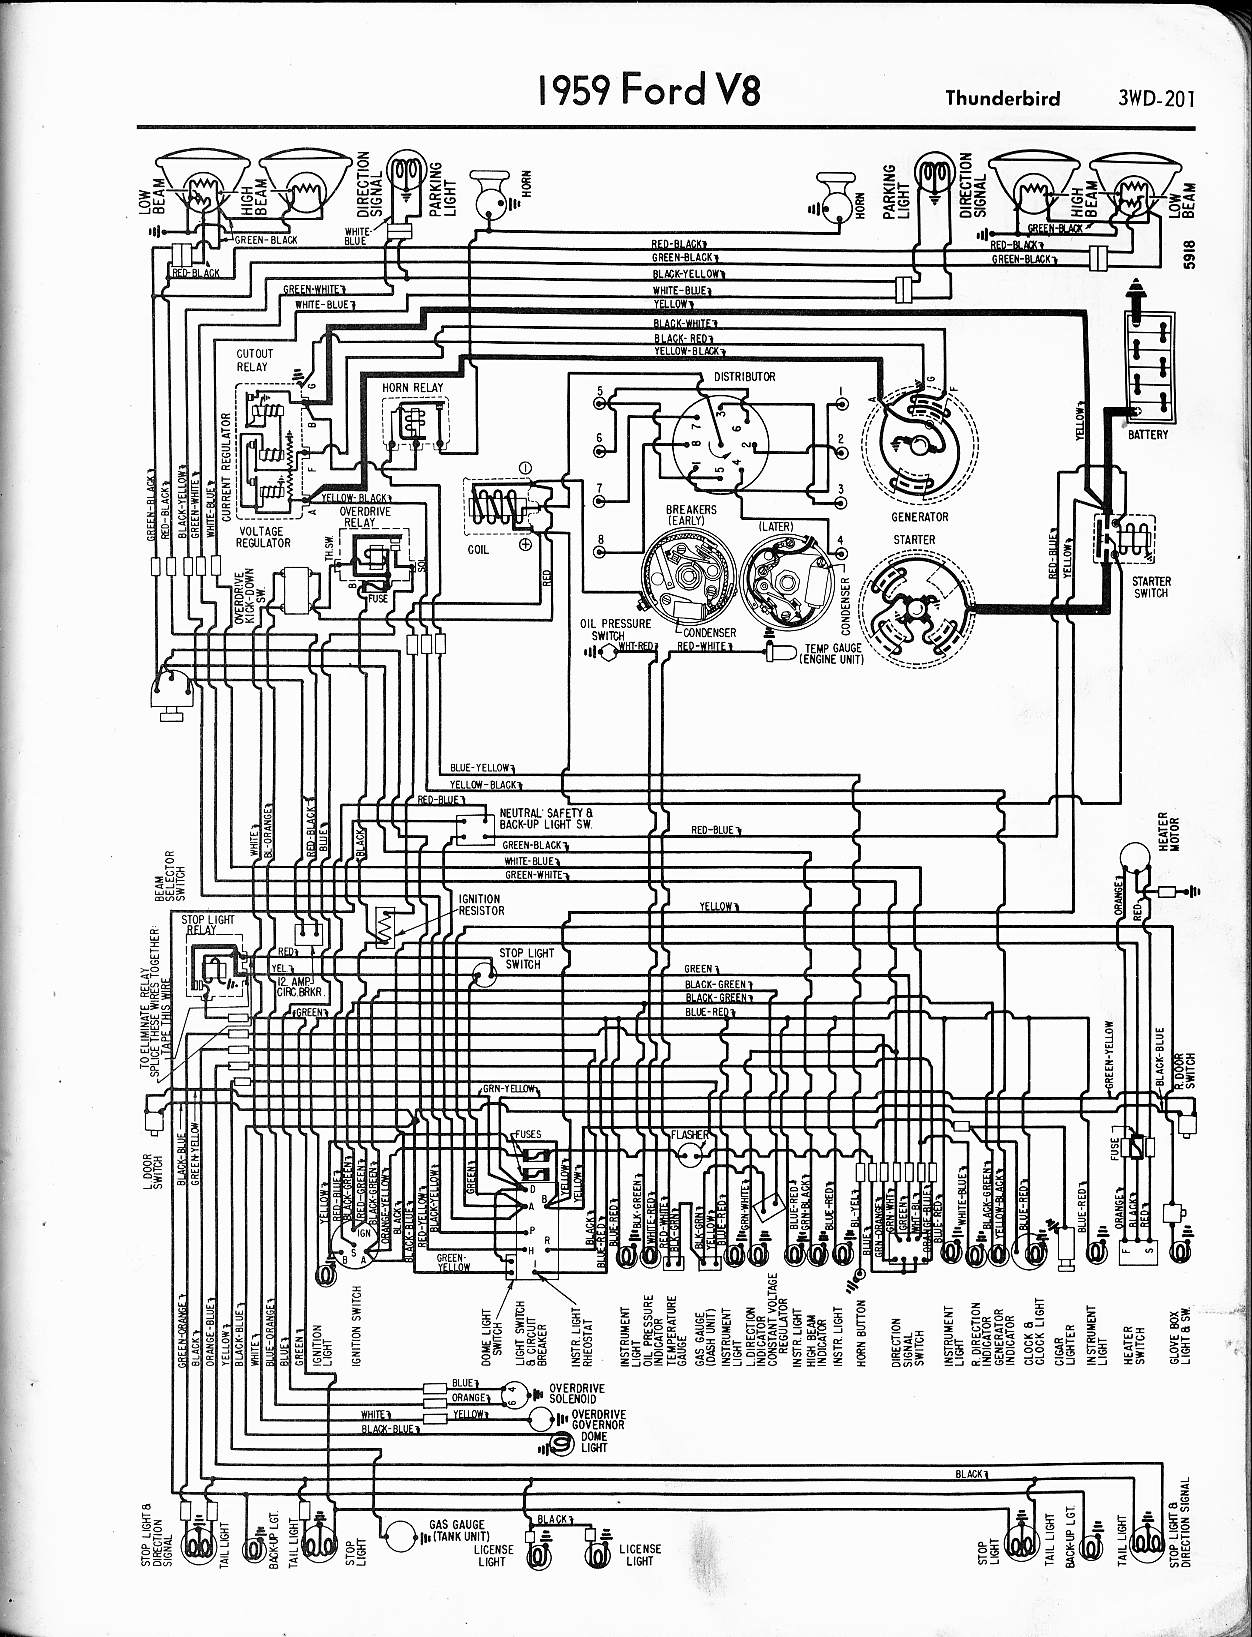 MWire5765 201 57 65 ford wiring diagrams diagram for communication at crackthecode.co